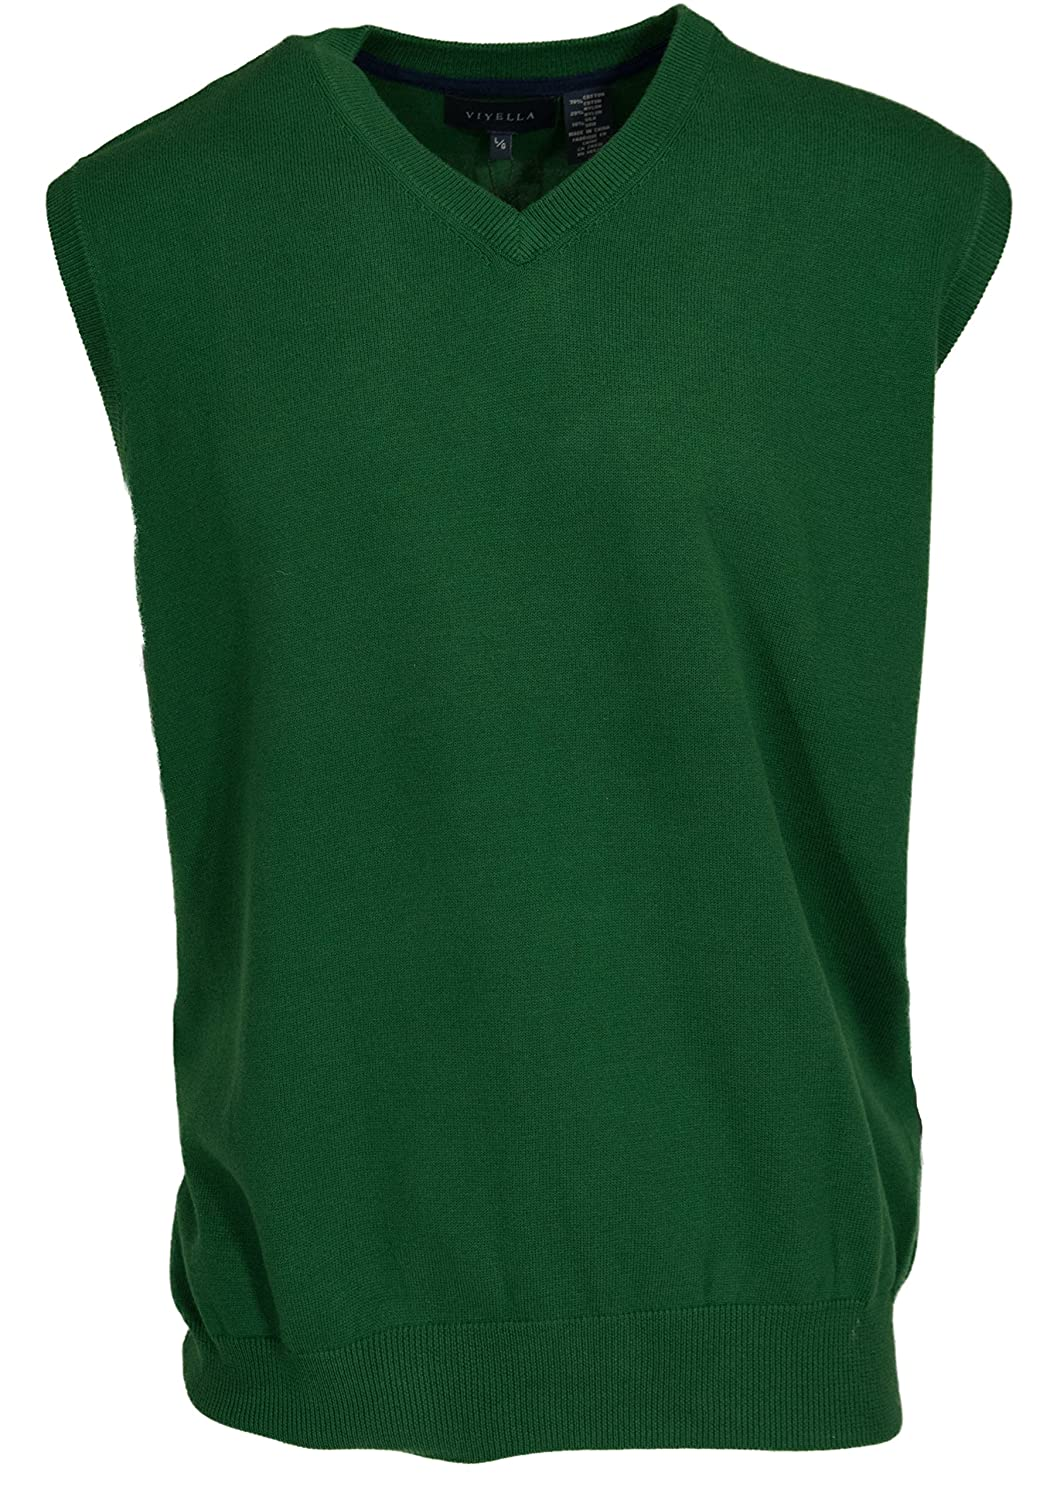 Viyella Kelly Green Sweater Vest (Large) at Amazon Men's Clothing ...